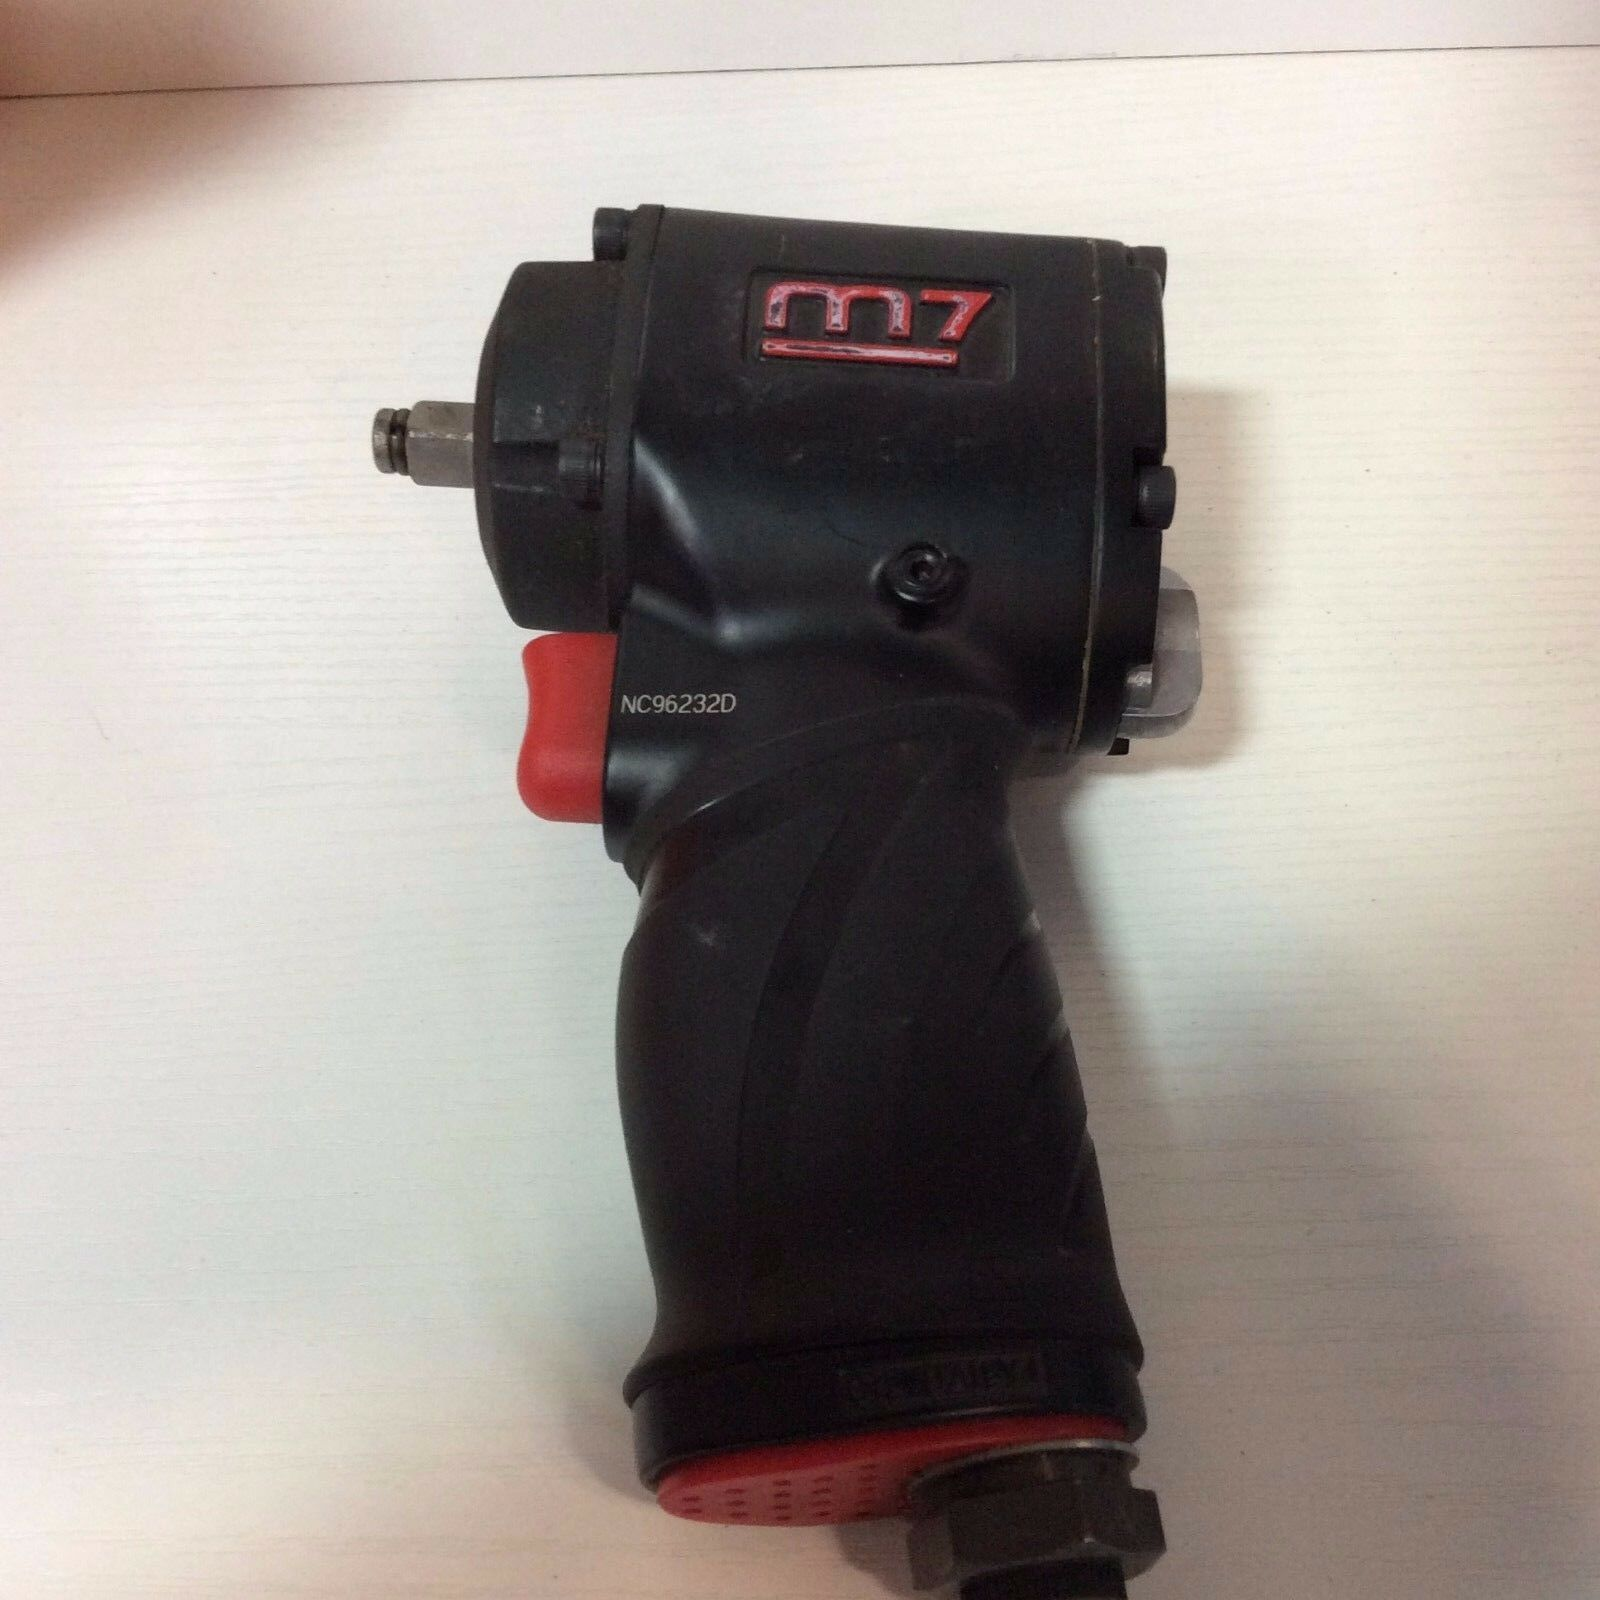 Mighty Seven 3 8  Drive Mini Air Impact Wrench NC-3611Q